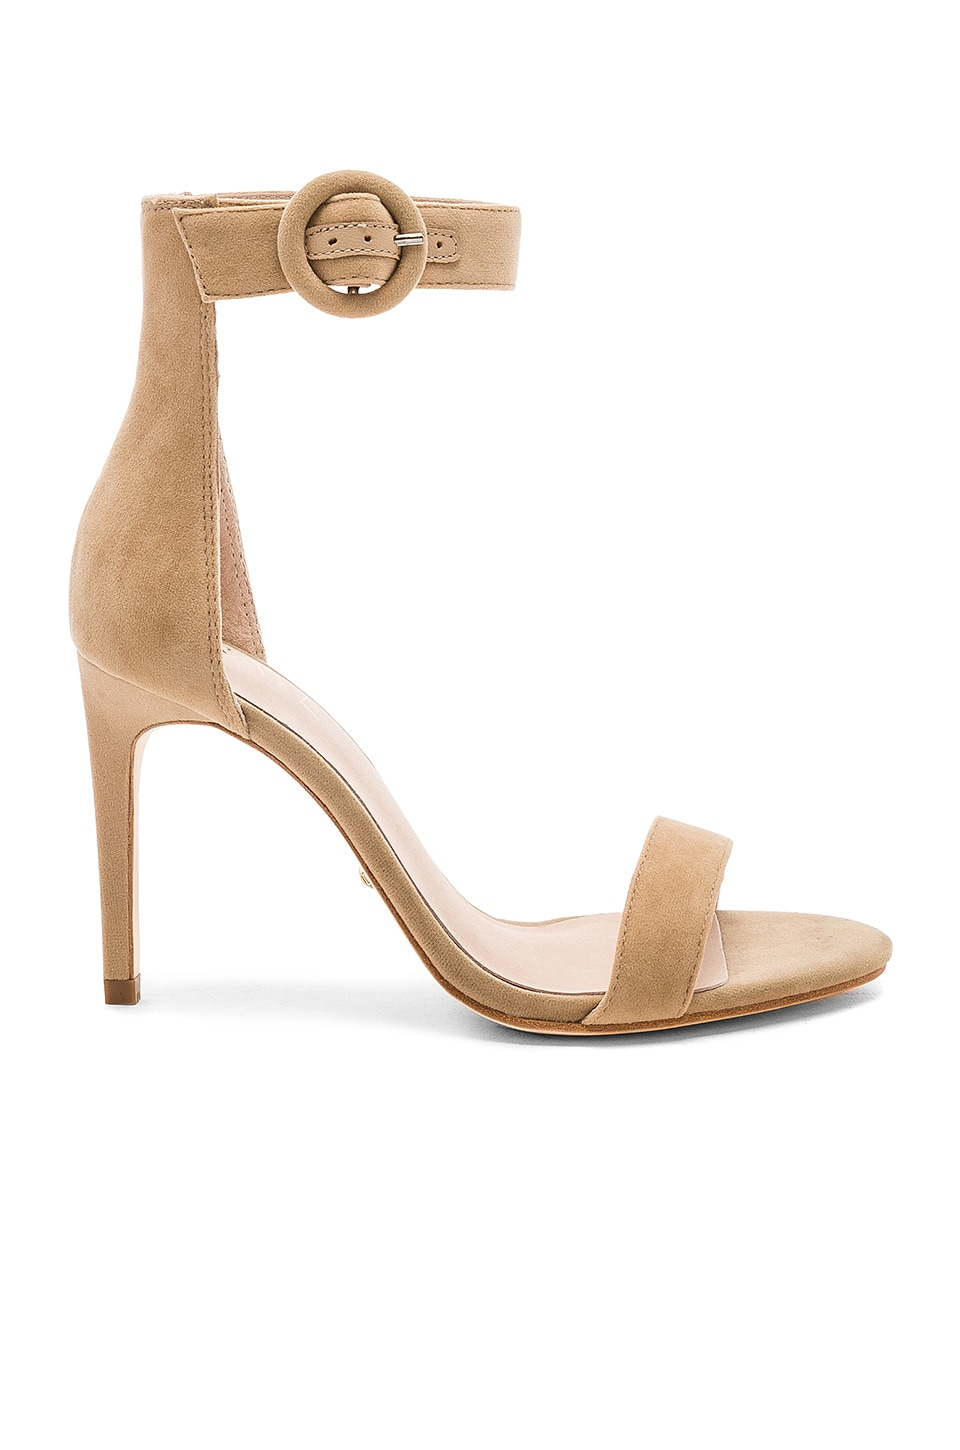 RAYE Kingsley Heel in Tan